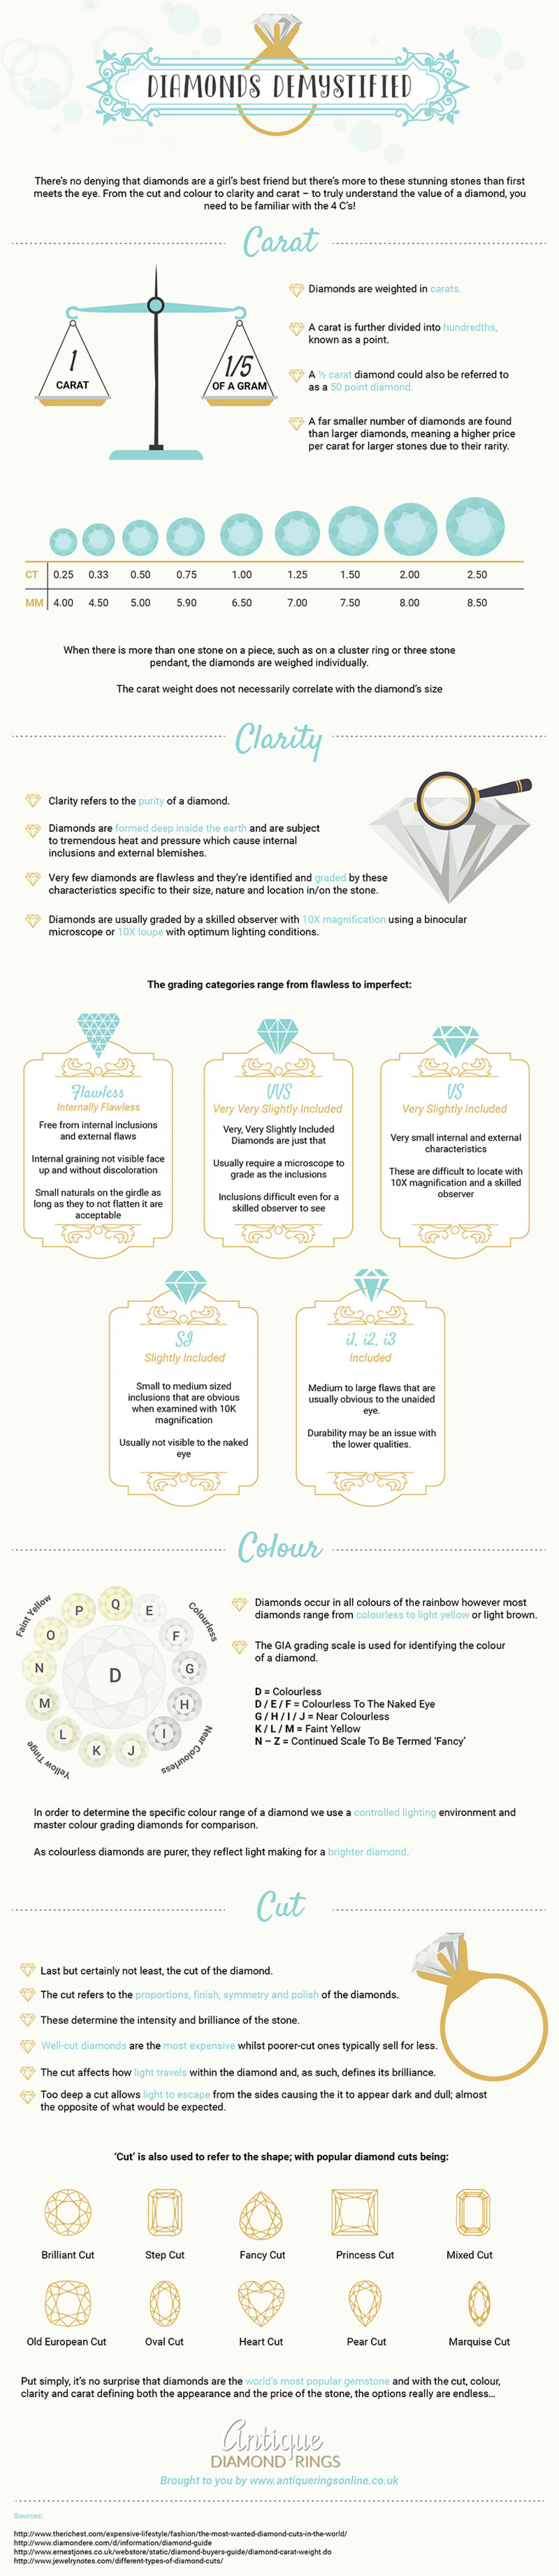 Diamonds Demystified Infographic